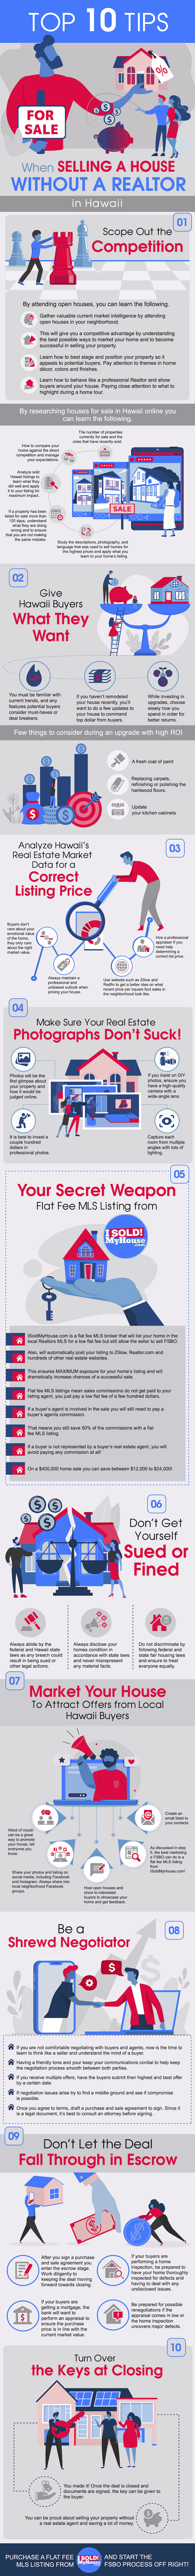 infographic of the 10 steps to sell a house in hawaii without an agent